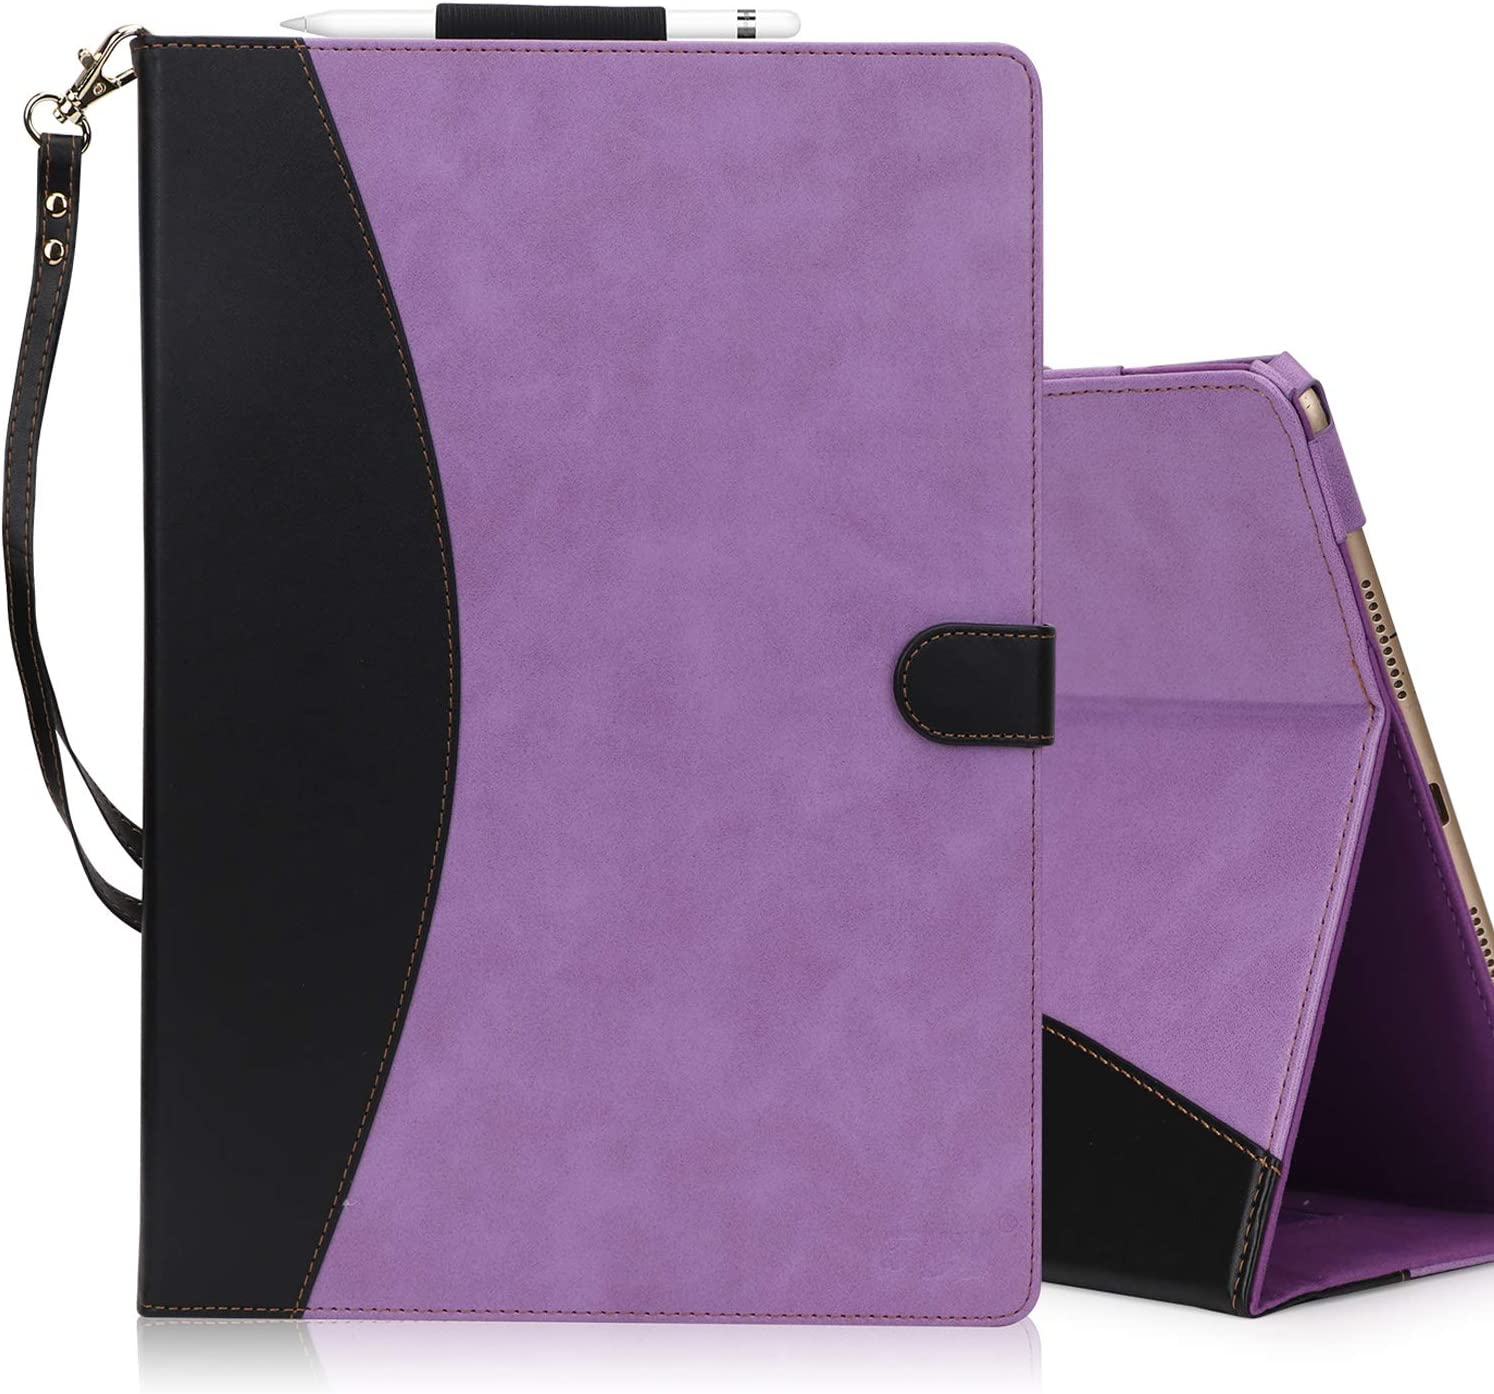 FYY [Leather Case] with [Apple Pencil Holder] for 2019 iPad Air 3 10.5/2017 iPad Pro 10.5 inch Case, Flip Folio Stand Case Protective with [Auto Sleep Wake],Multiple Stand Angles, Card Slots Purple